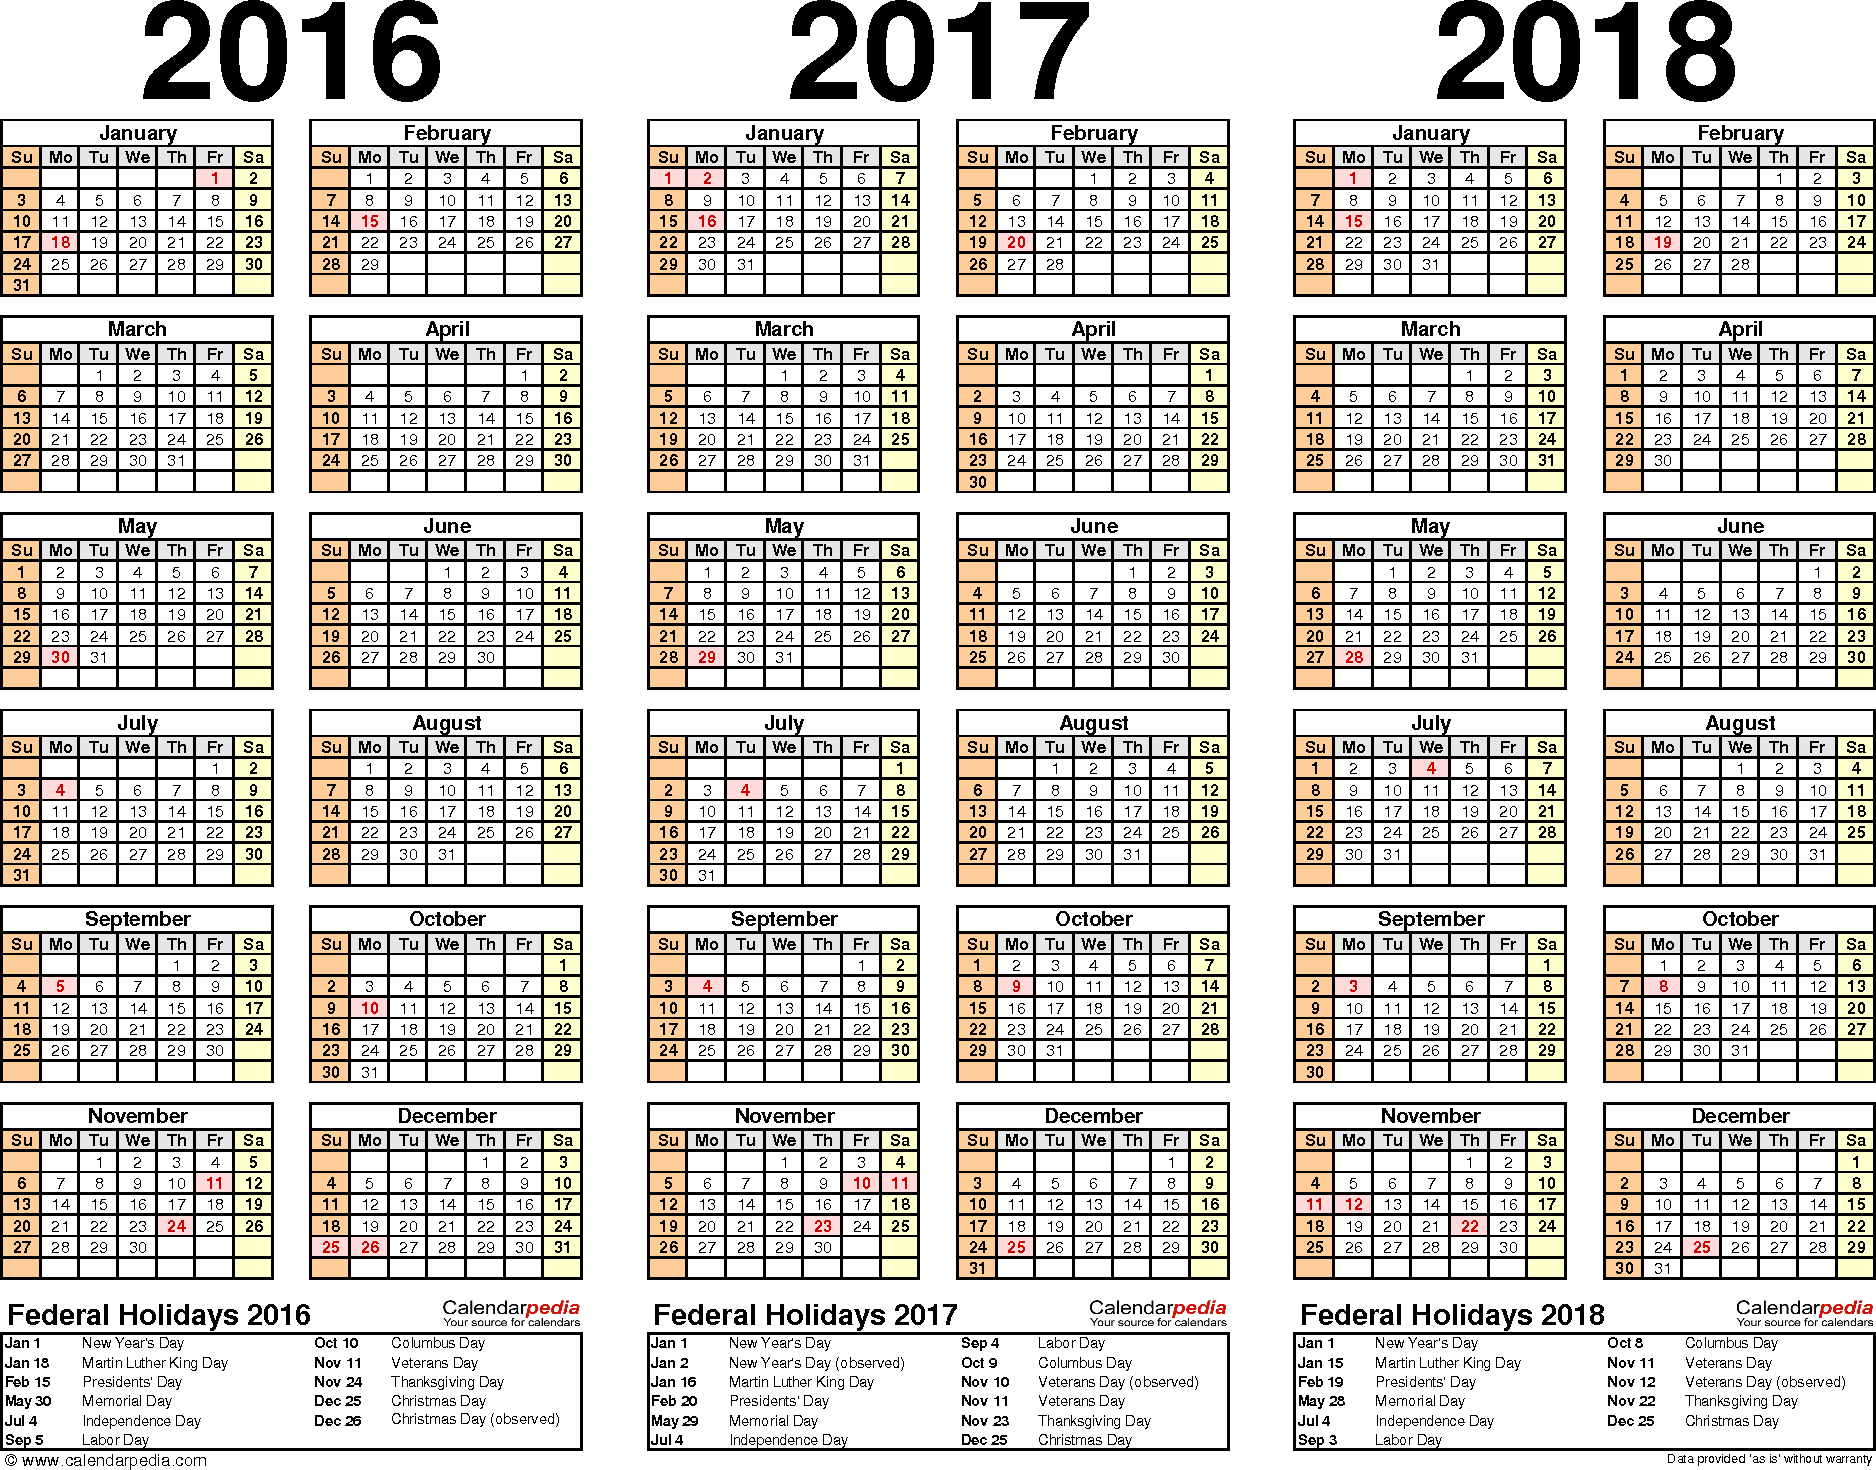 Ediblewildsus  Terrific  Calendar   Threeyear Printable Excel Calendars With Fascinating Template  Excel Template For Three Year Calendar  Landscape With Easy On The Eye Merge Text In Excel Also Using If Else In Excel In Addition Excel Keyboard Shortcut And Spellnumber Function In Excel As Well As Why Do I Get Pound Signs In Excel Additionally Skewness Excel From Calendarpediacom With Ediblewildsus  Fascinating  Calendar   Threeyear Printable Excel Calendars With Easy On The Eye Template  Excel Template For Three Year Calendar  Landscape And Terrific Merge Text In Excel Also Using If Else In Excel In Addition Excel Keyboard Shortcut From Calendarpediacom